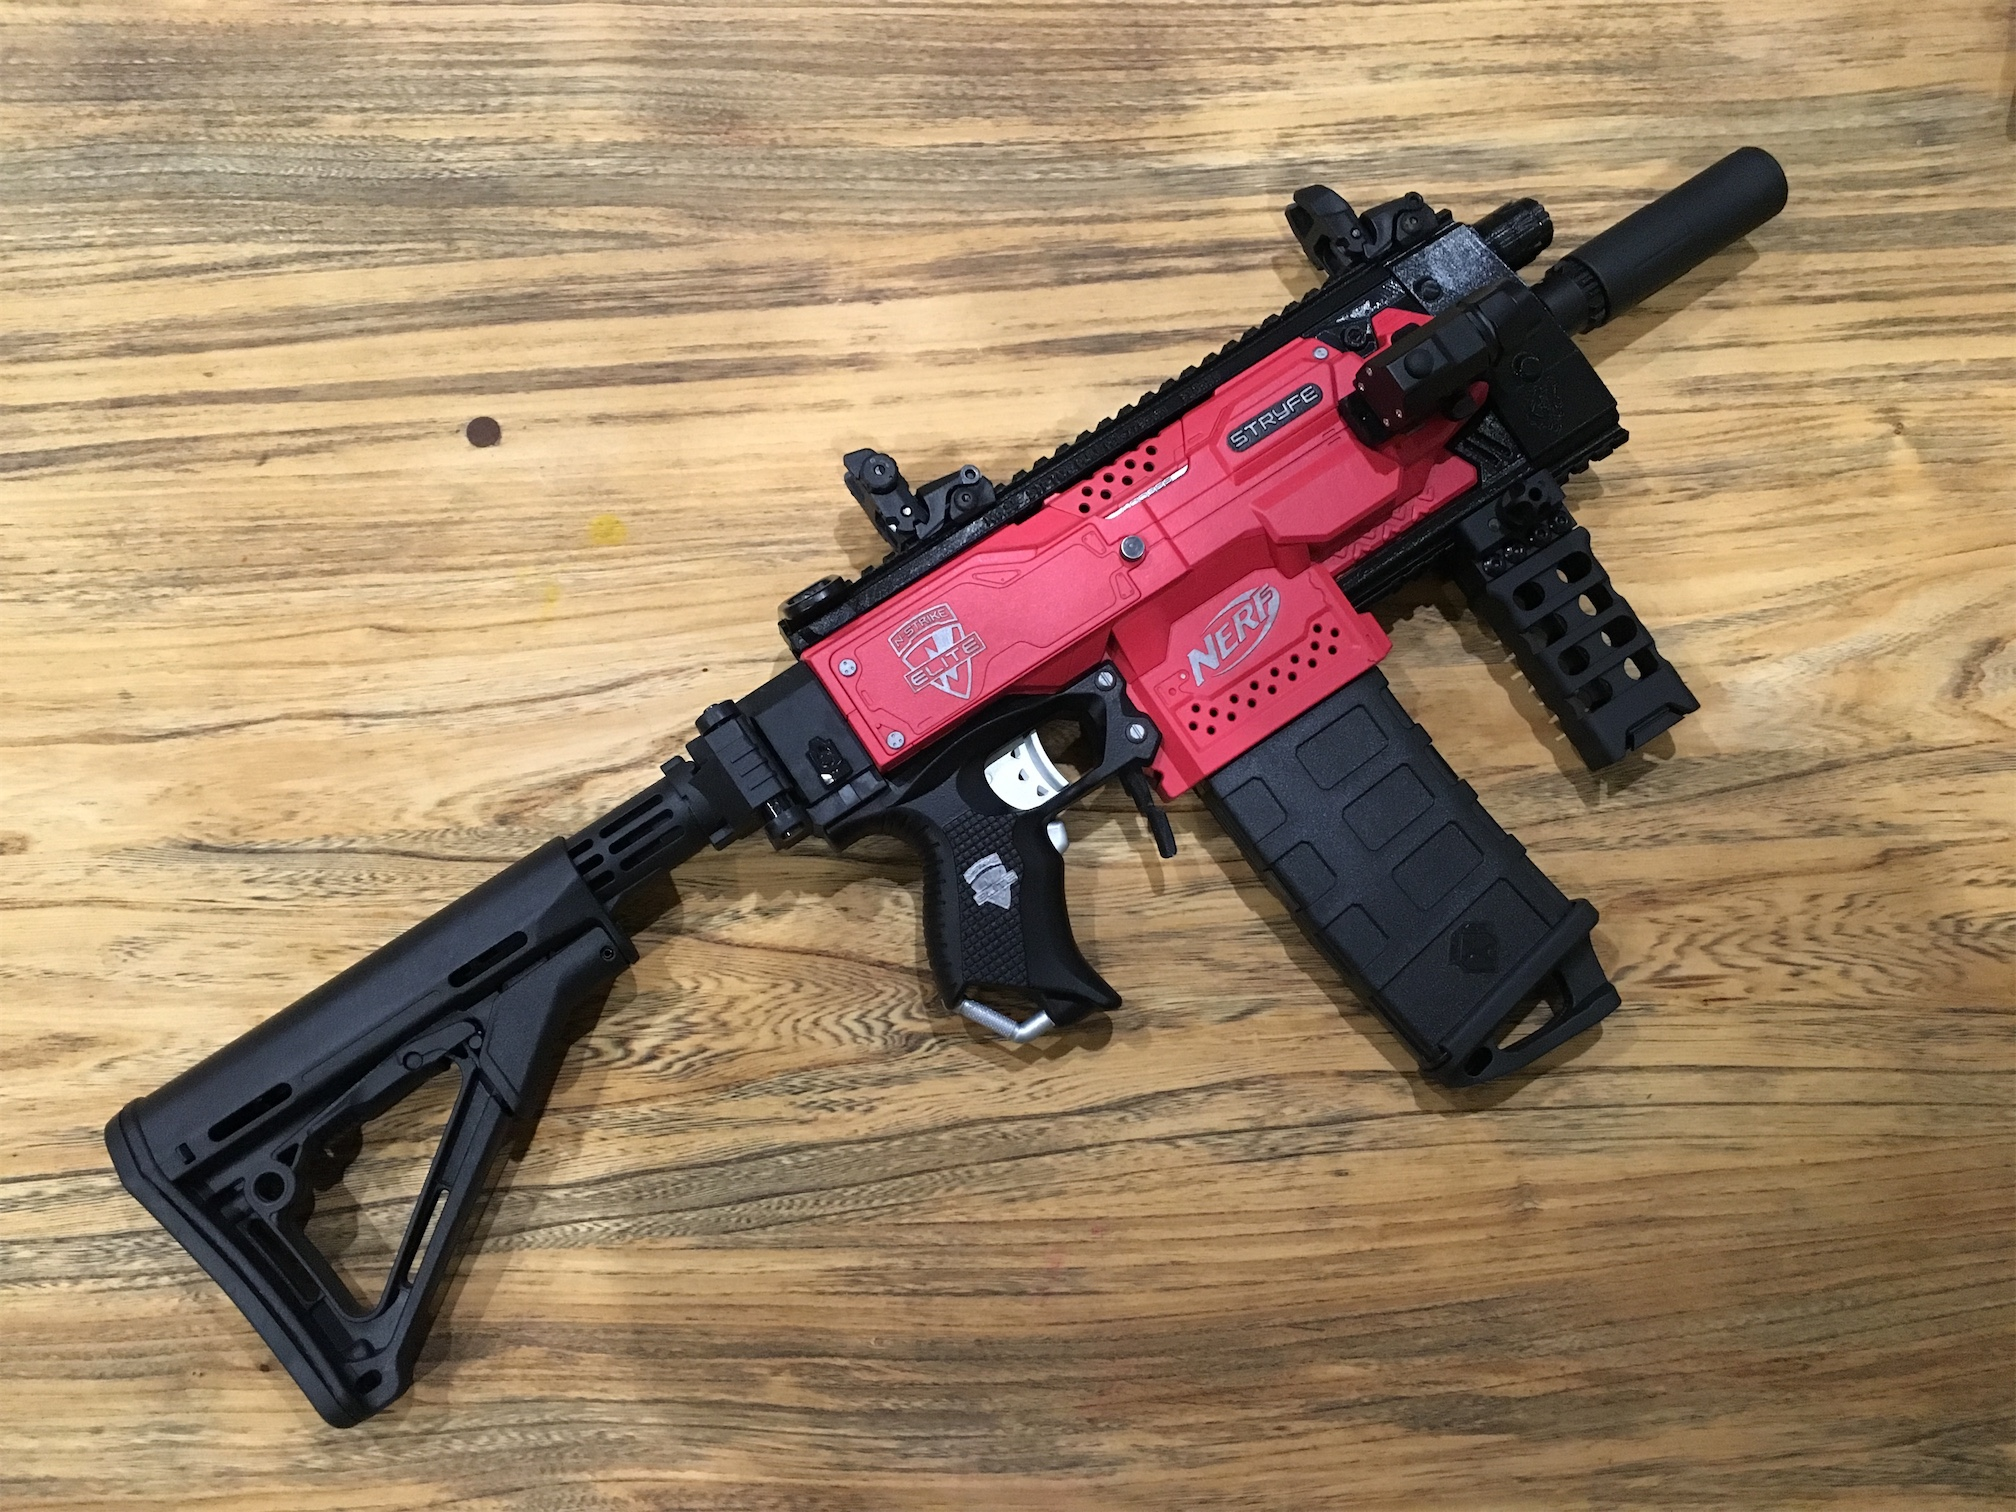 CosmeticsMy Stryfe tacticool project is complete.